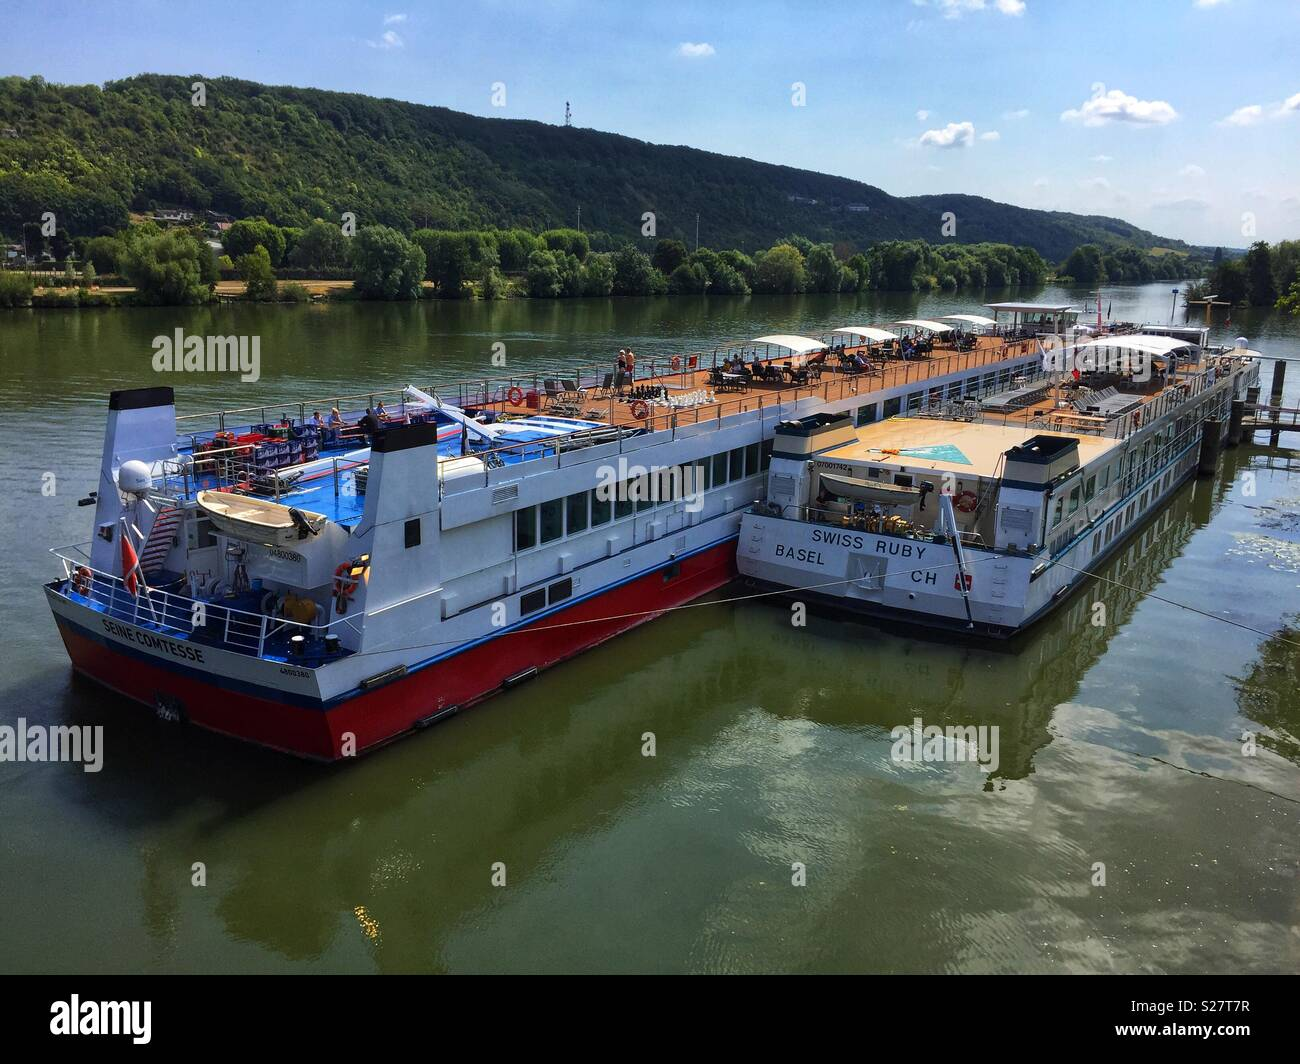 River cruisers on the River Seine at Vernon, Normandy, France - Stock Image